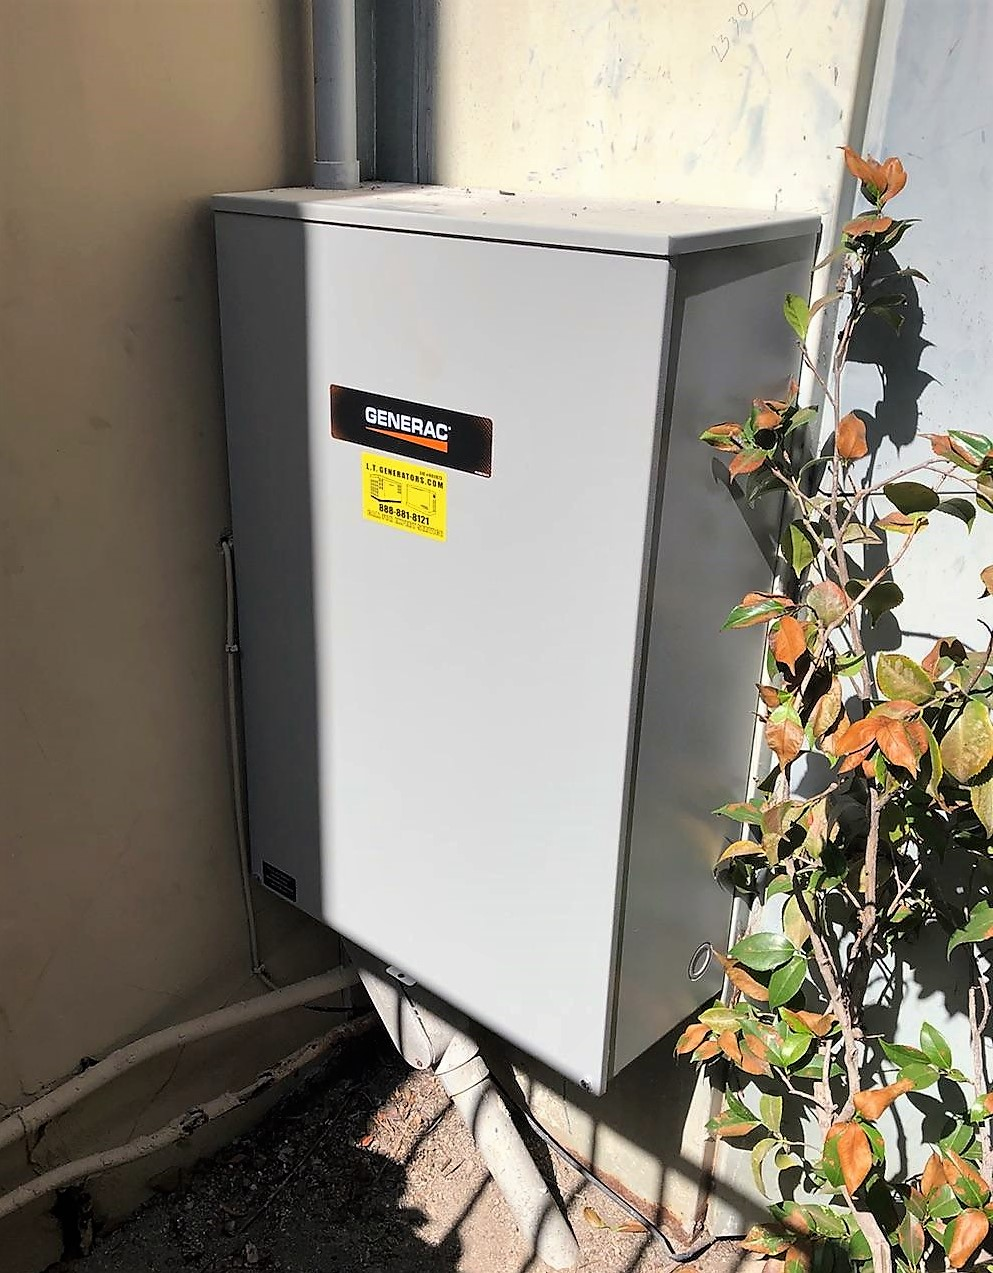 Generac Transfer Switch Laguna Beach, CA